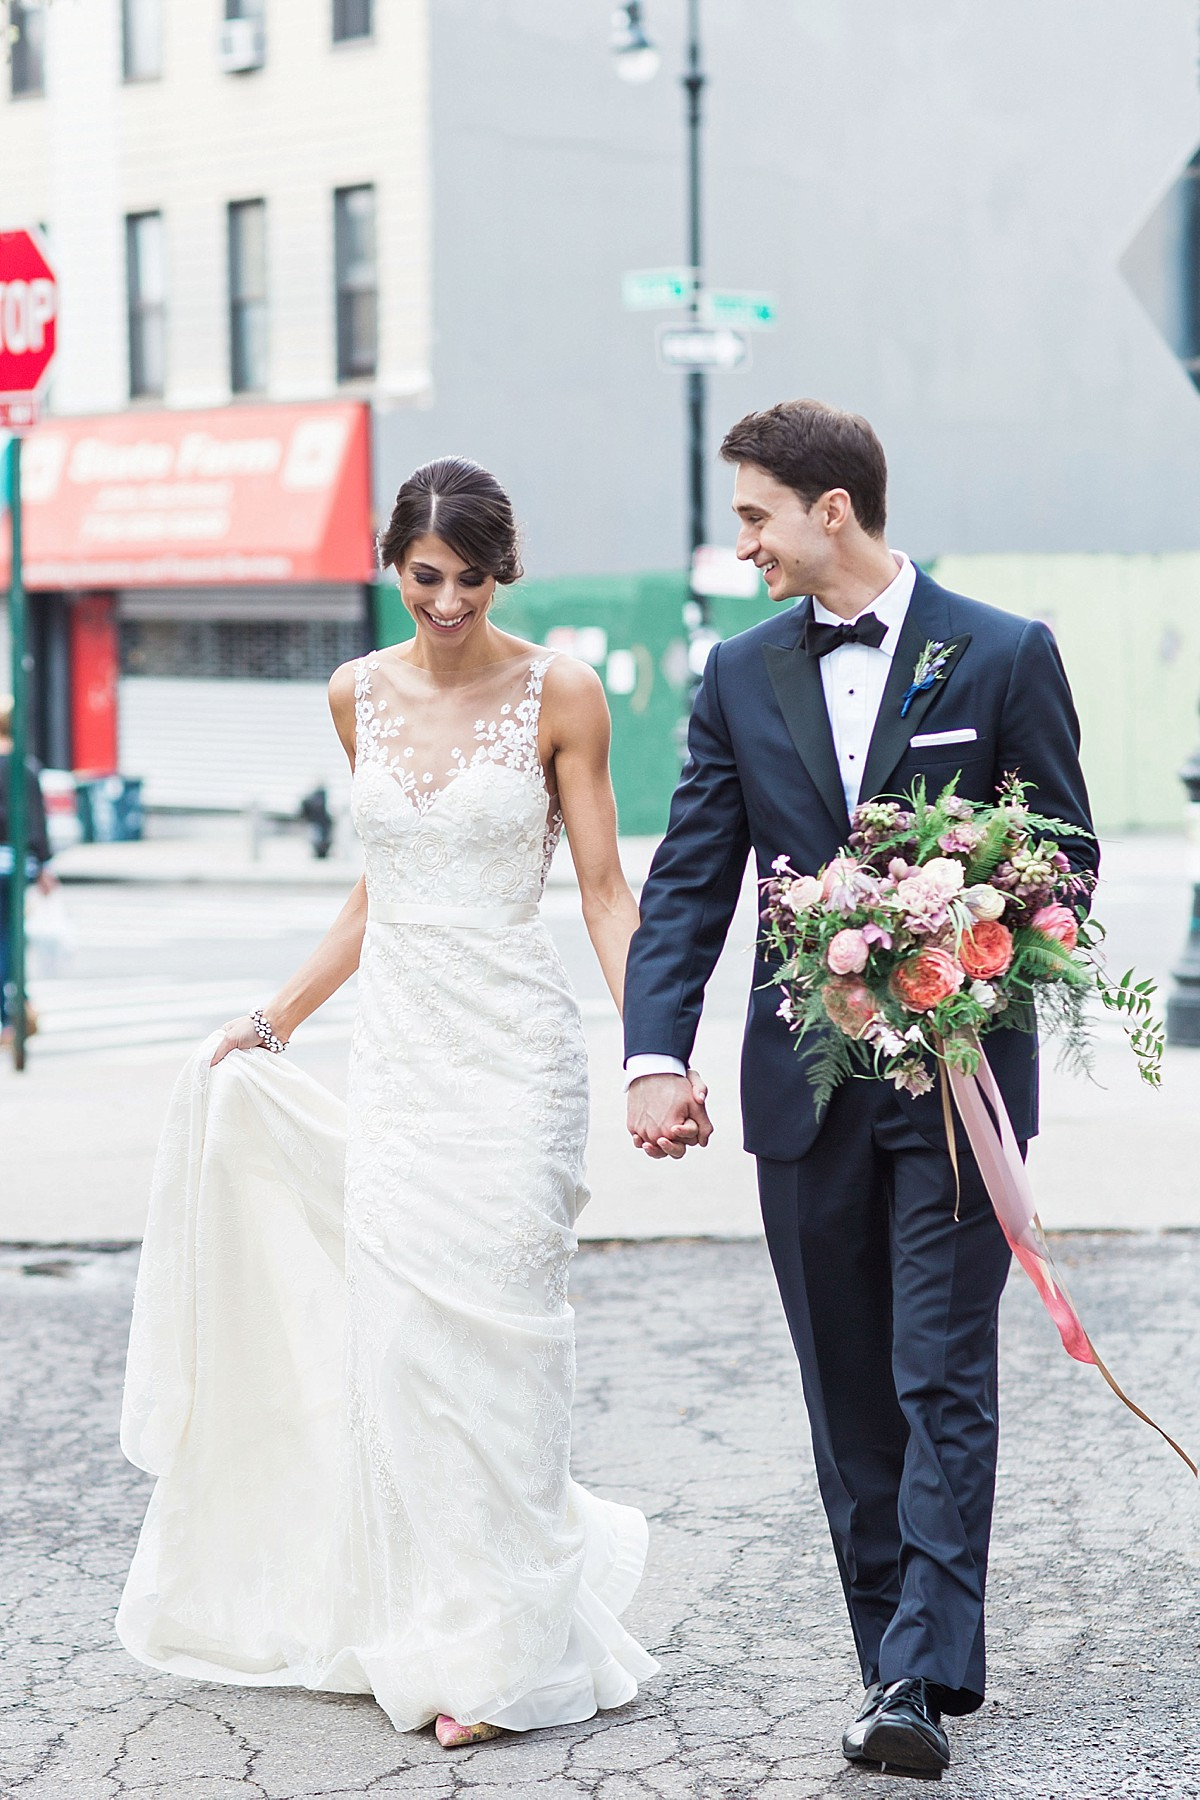 Street wedding photography in Williamsburg, NY by Clean Plate Pictures, Brooklyn Wedding Photographer